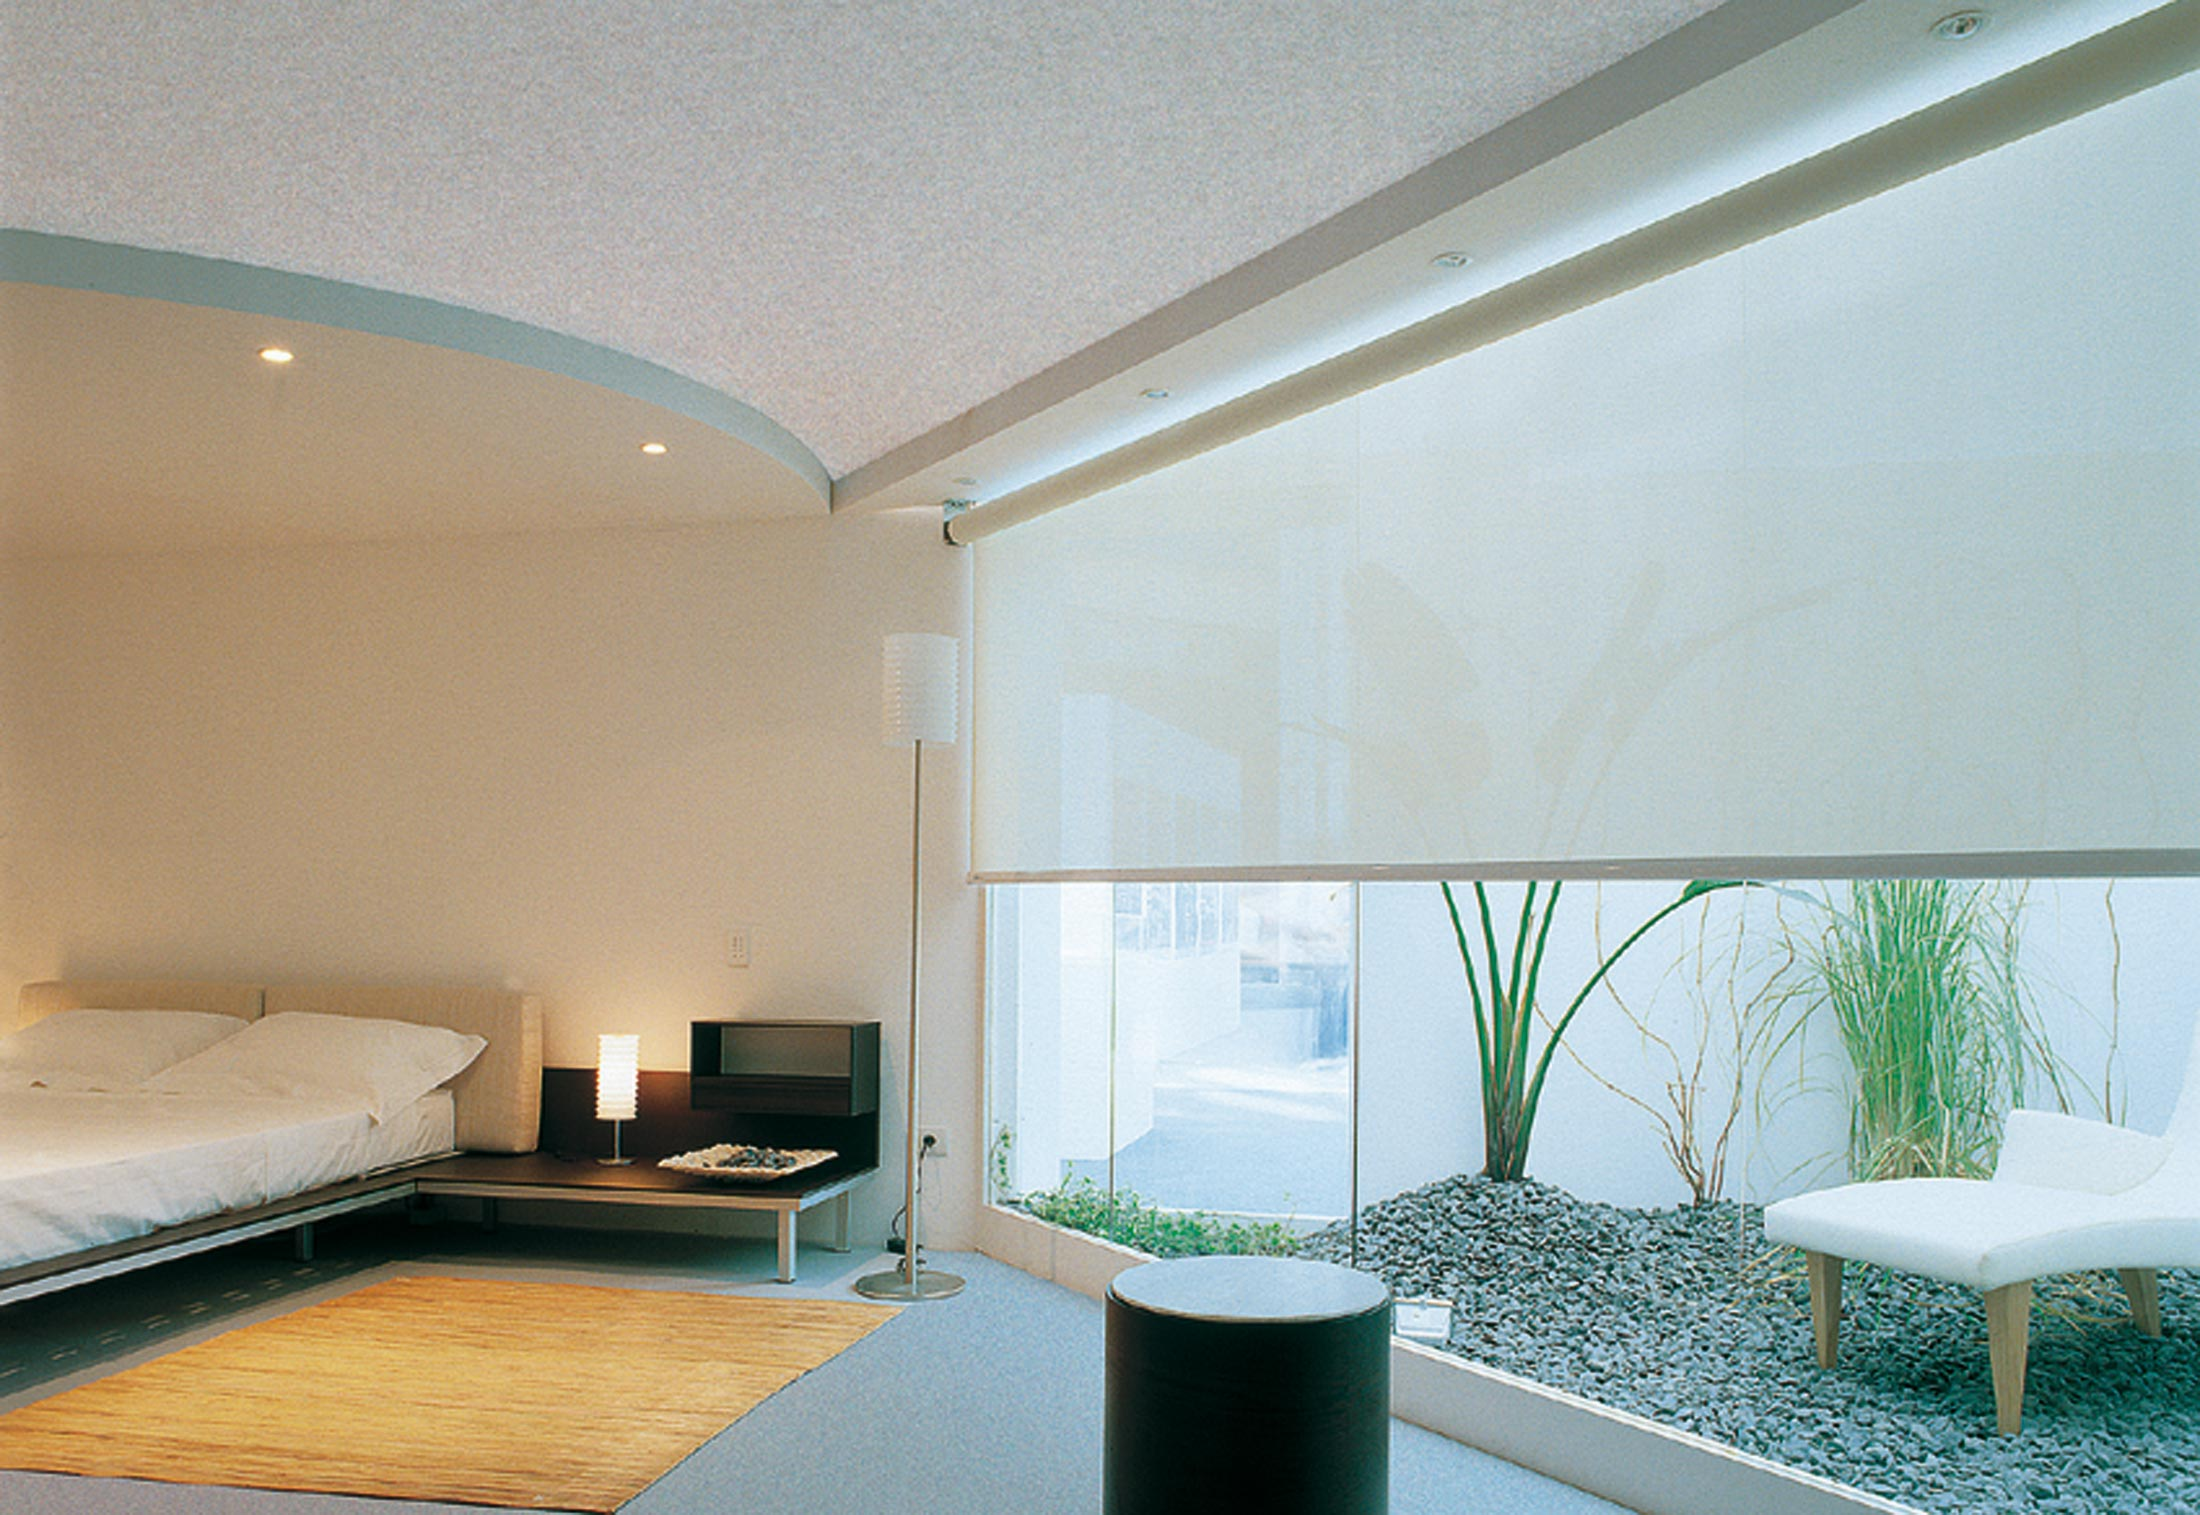 Roller blind systems by Silent Gliss | STYLEPARK